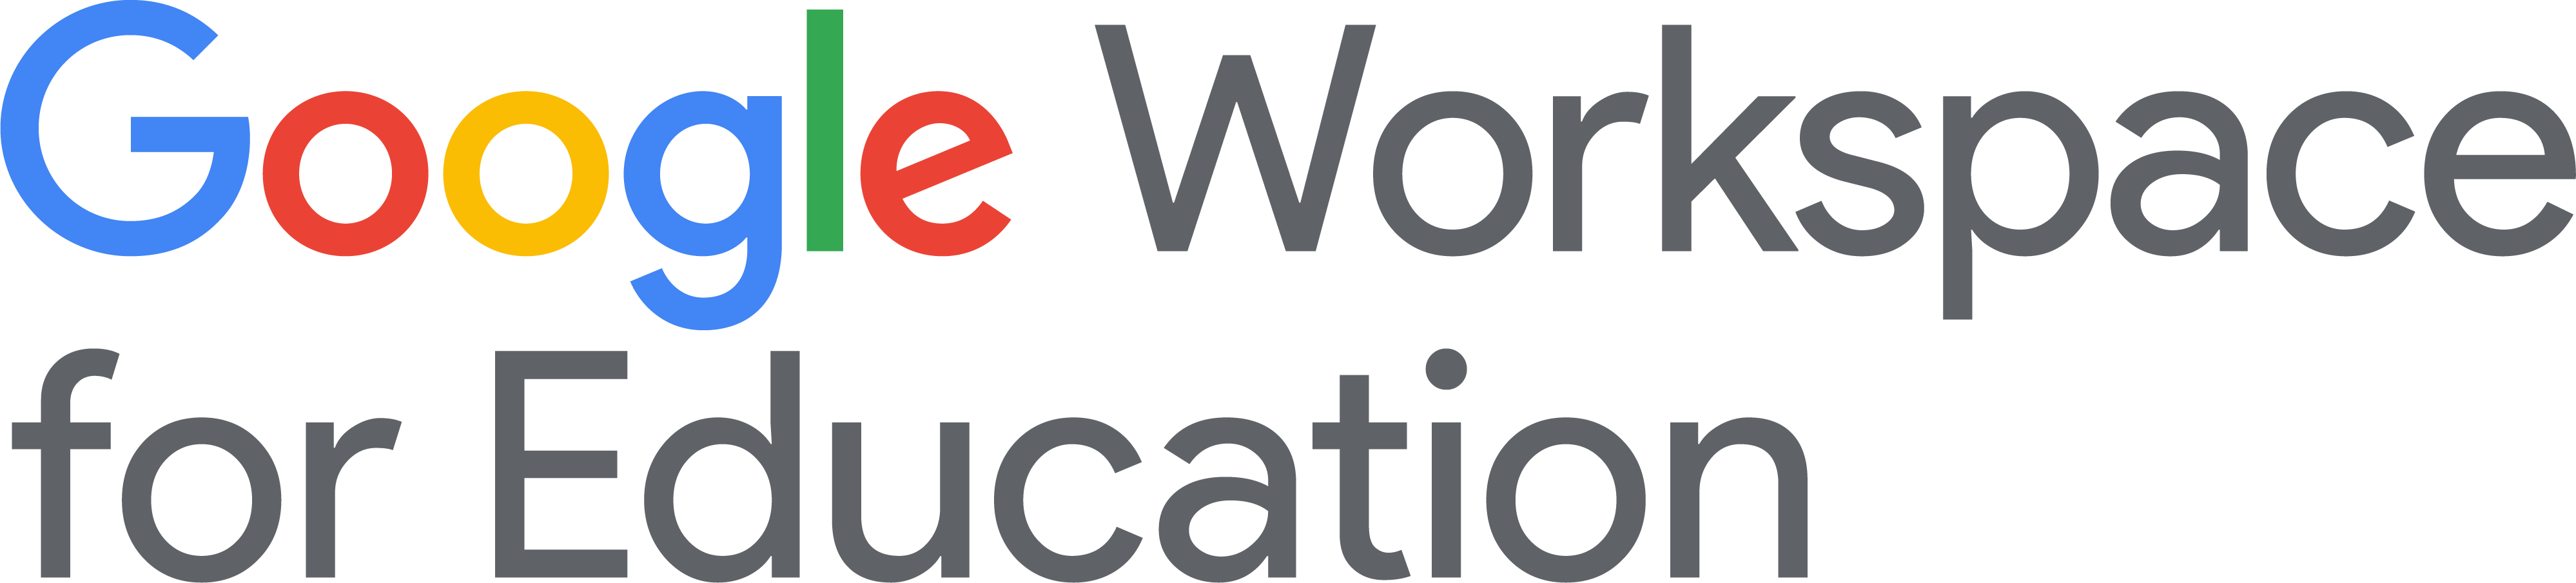 Google Workspace for Education logo